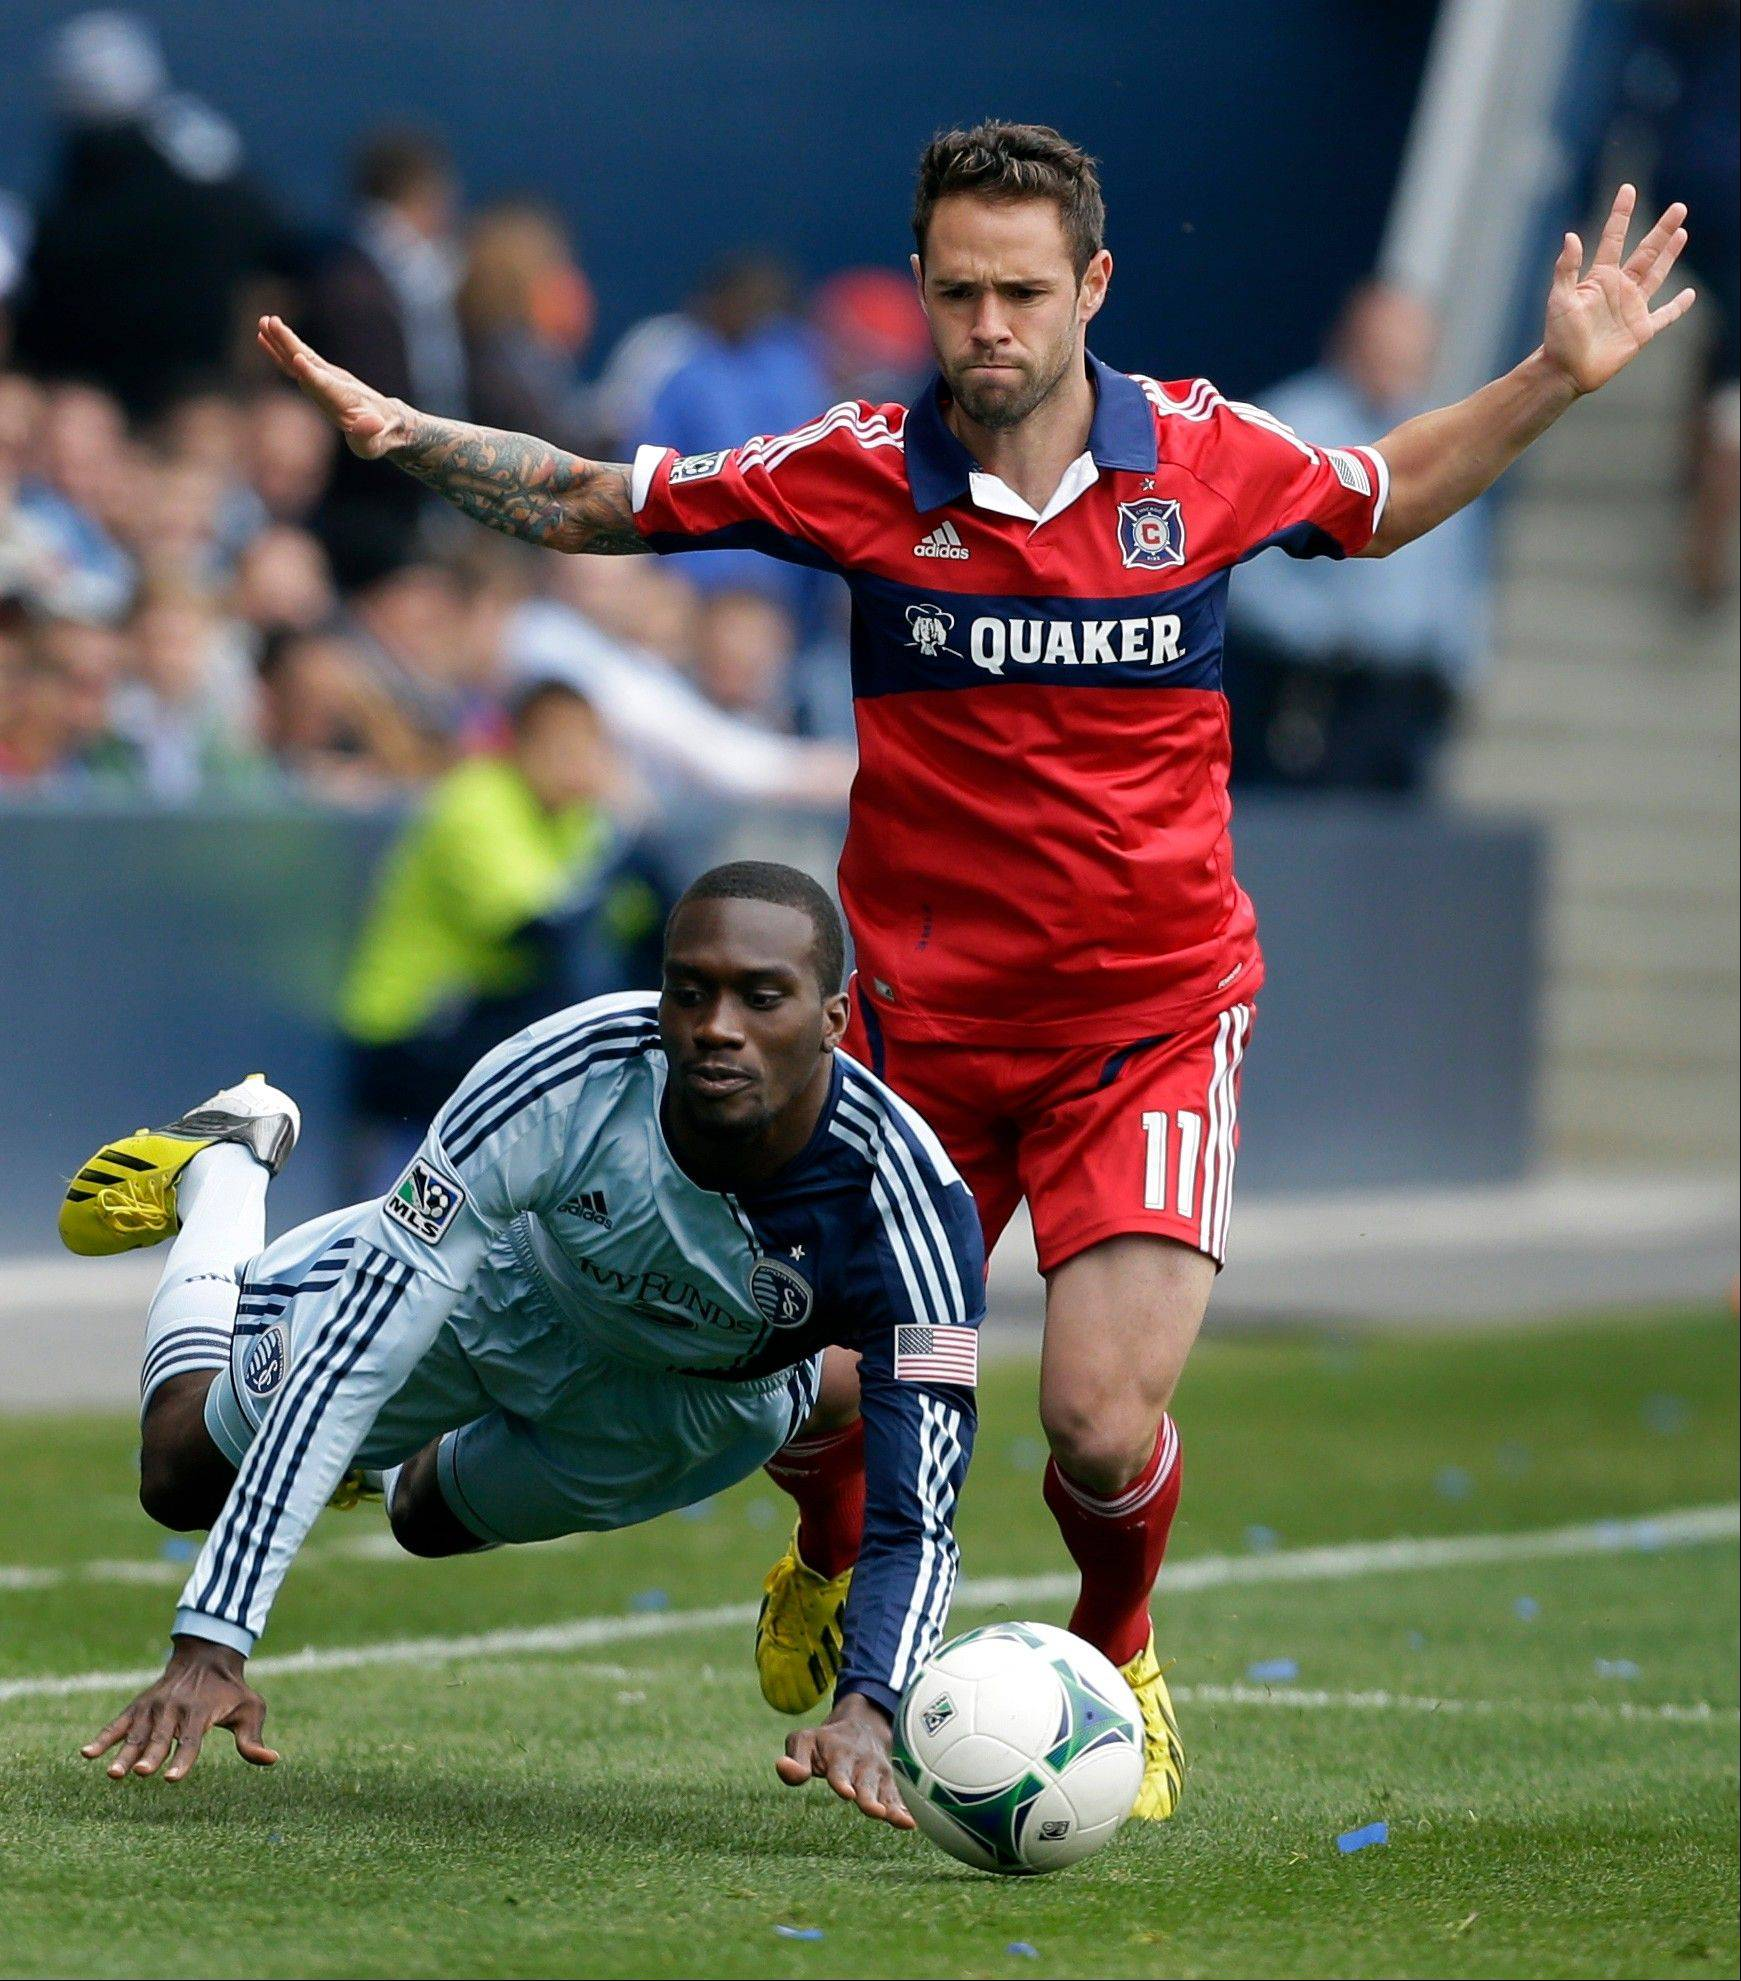 Chicago Fire midfielder Bobby Convey (11) knocks down Sporting Kansas City forward C.J. Sapong (17) during the first half of an MLS soccer match in Kansas City, Kan., Saturday, March 16, 2013.